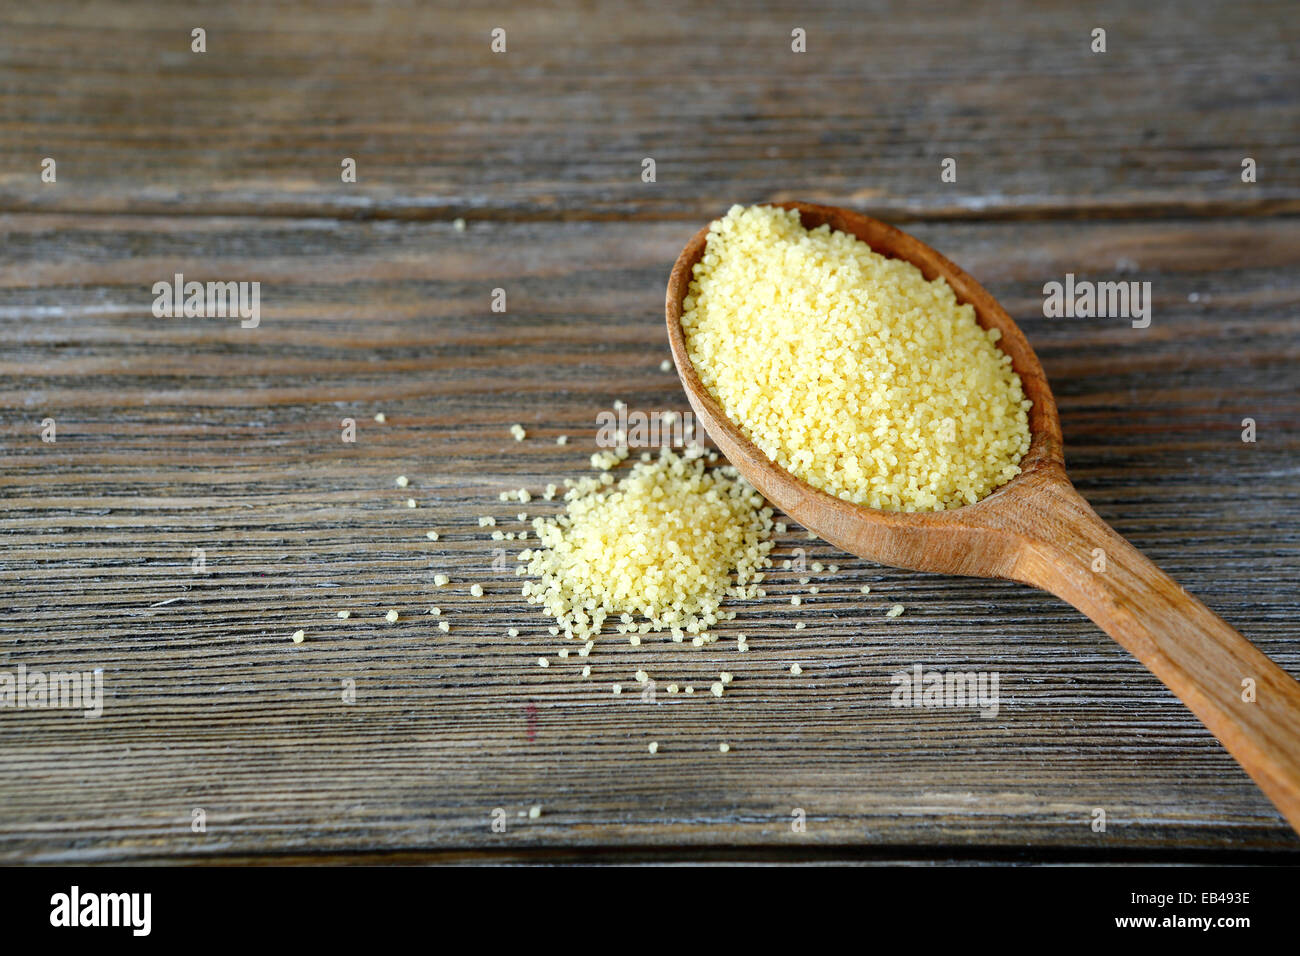 Raw couscous in a wooden spoon on boards, food close up - Stock Image